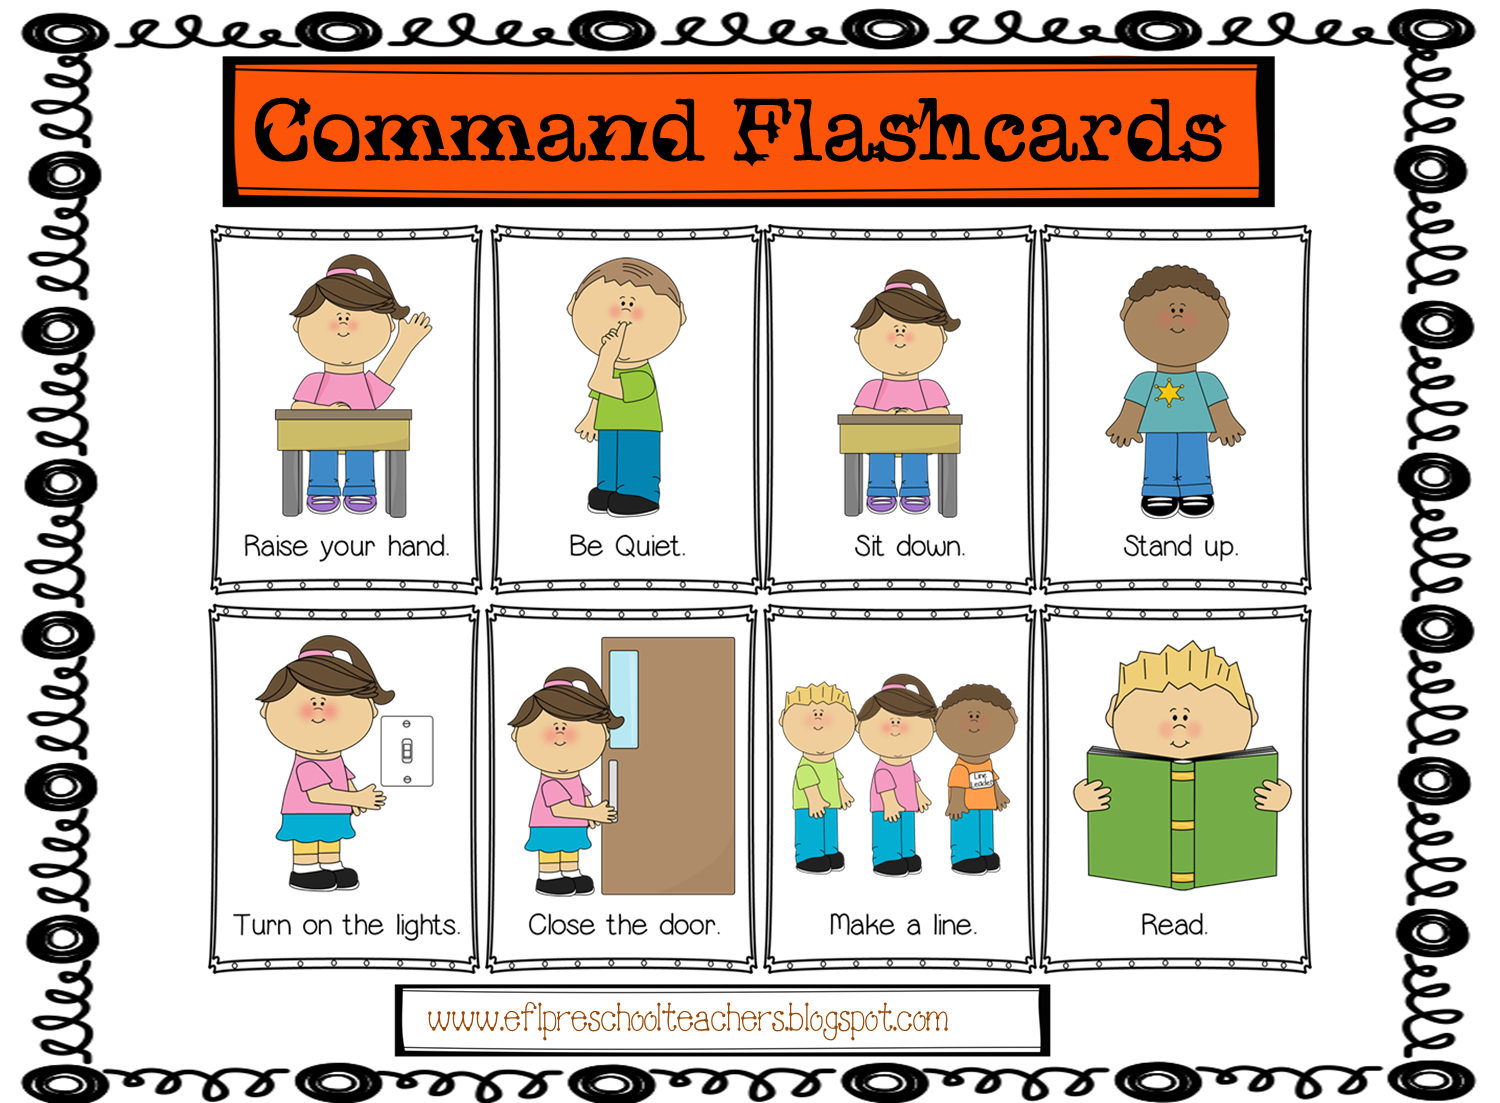 Libros Listening Ingles Esl Commands Flashcards Tpt Products From My Blogs